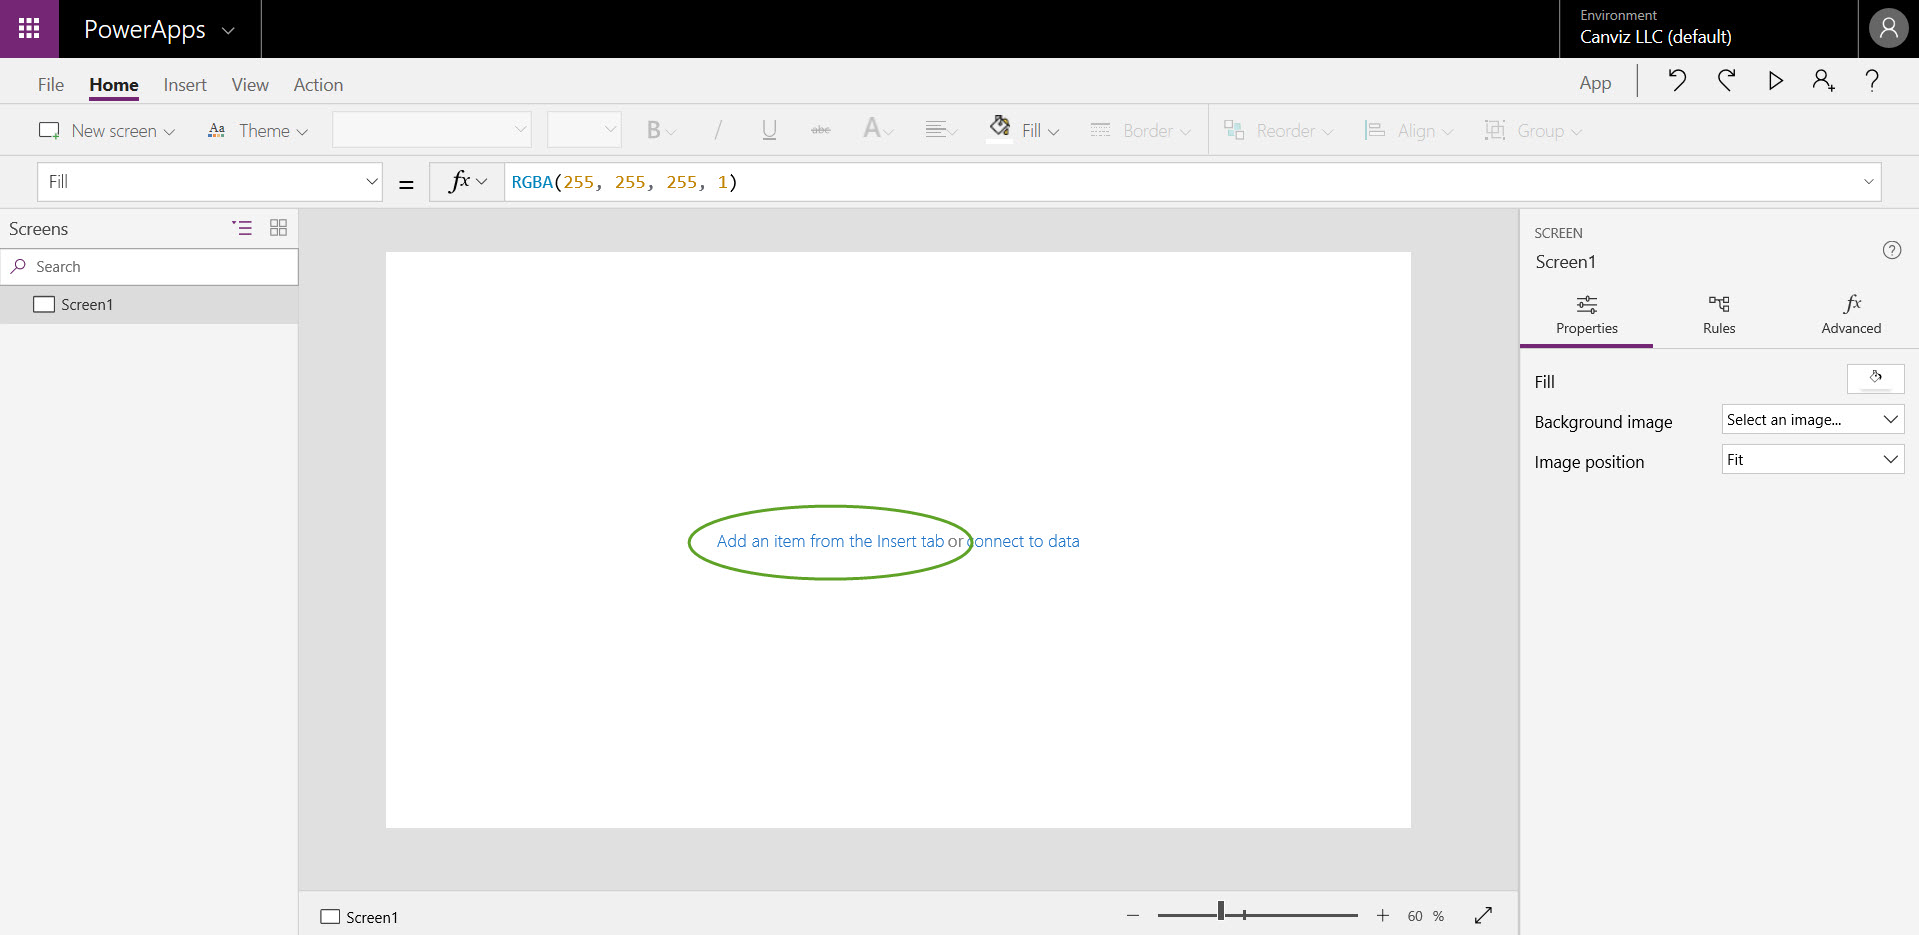 Hands-on: Use PowerApps to create your own security camera